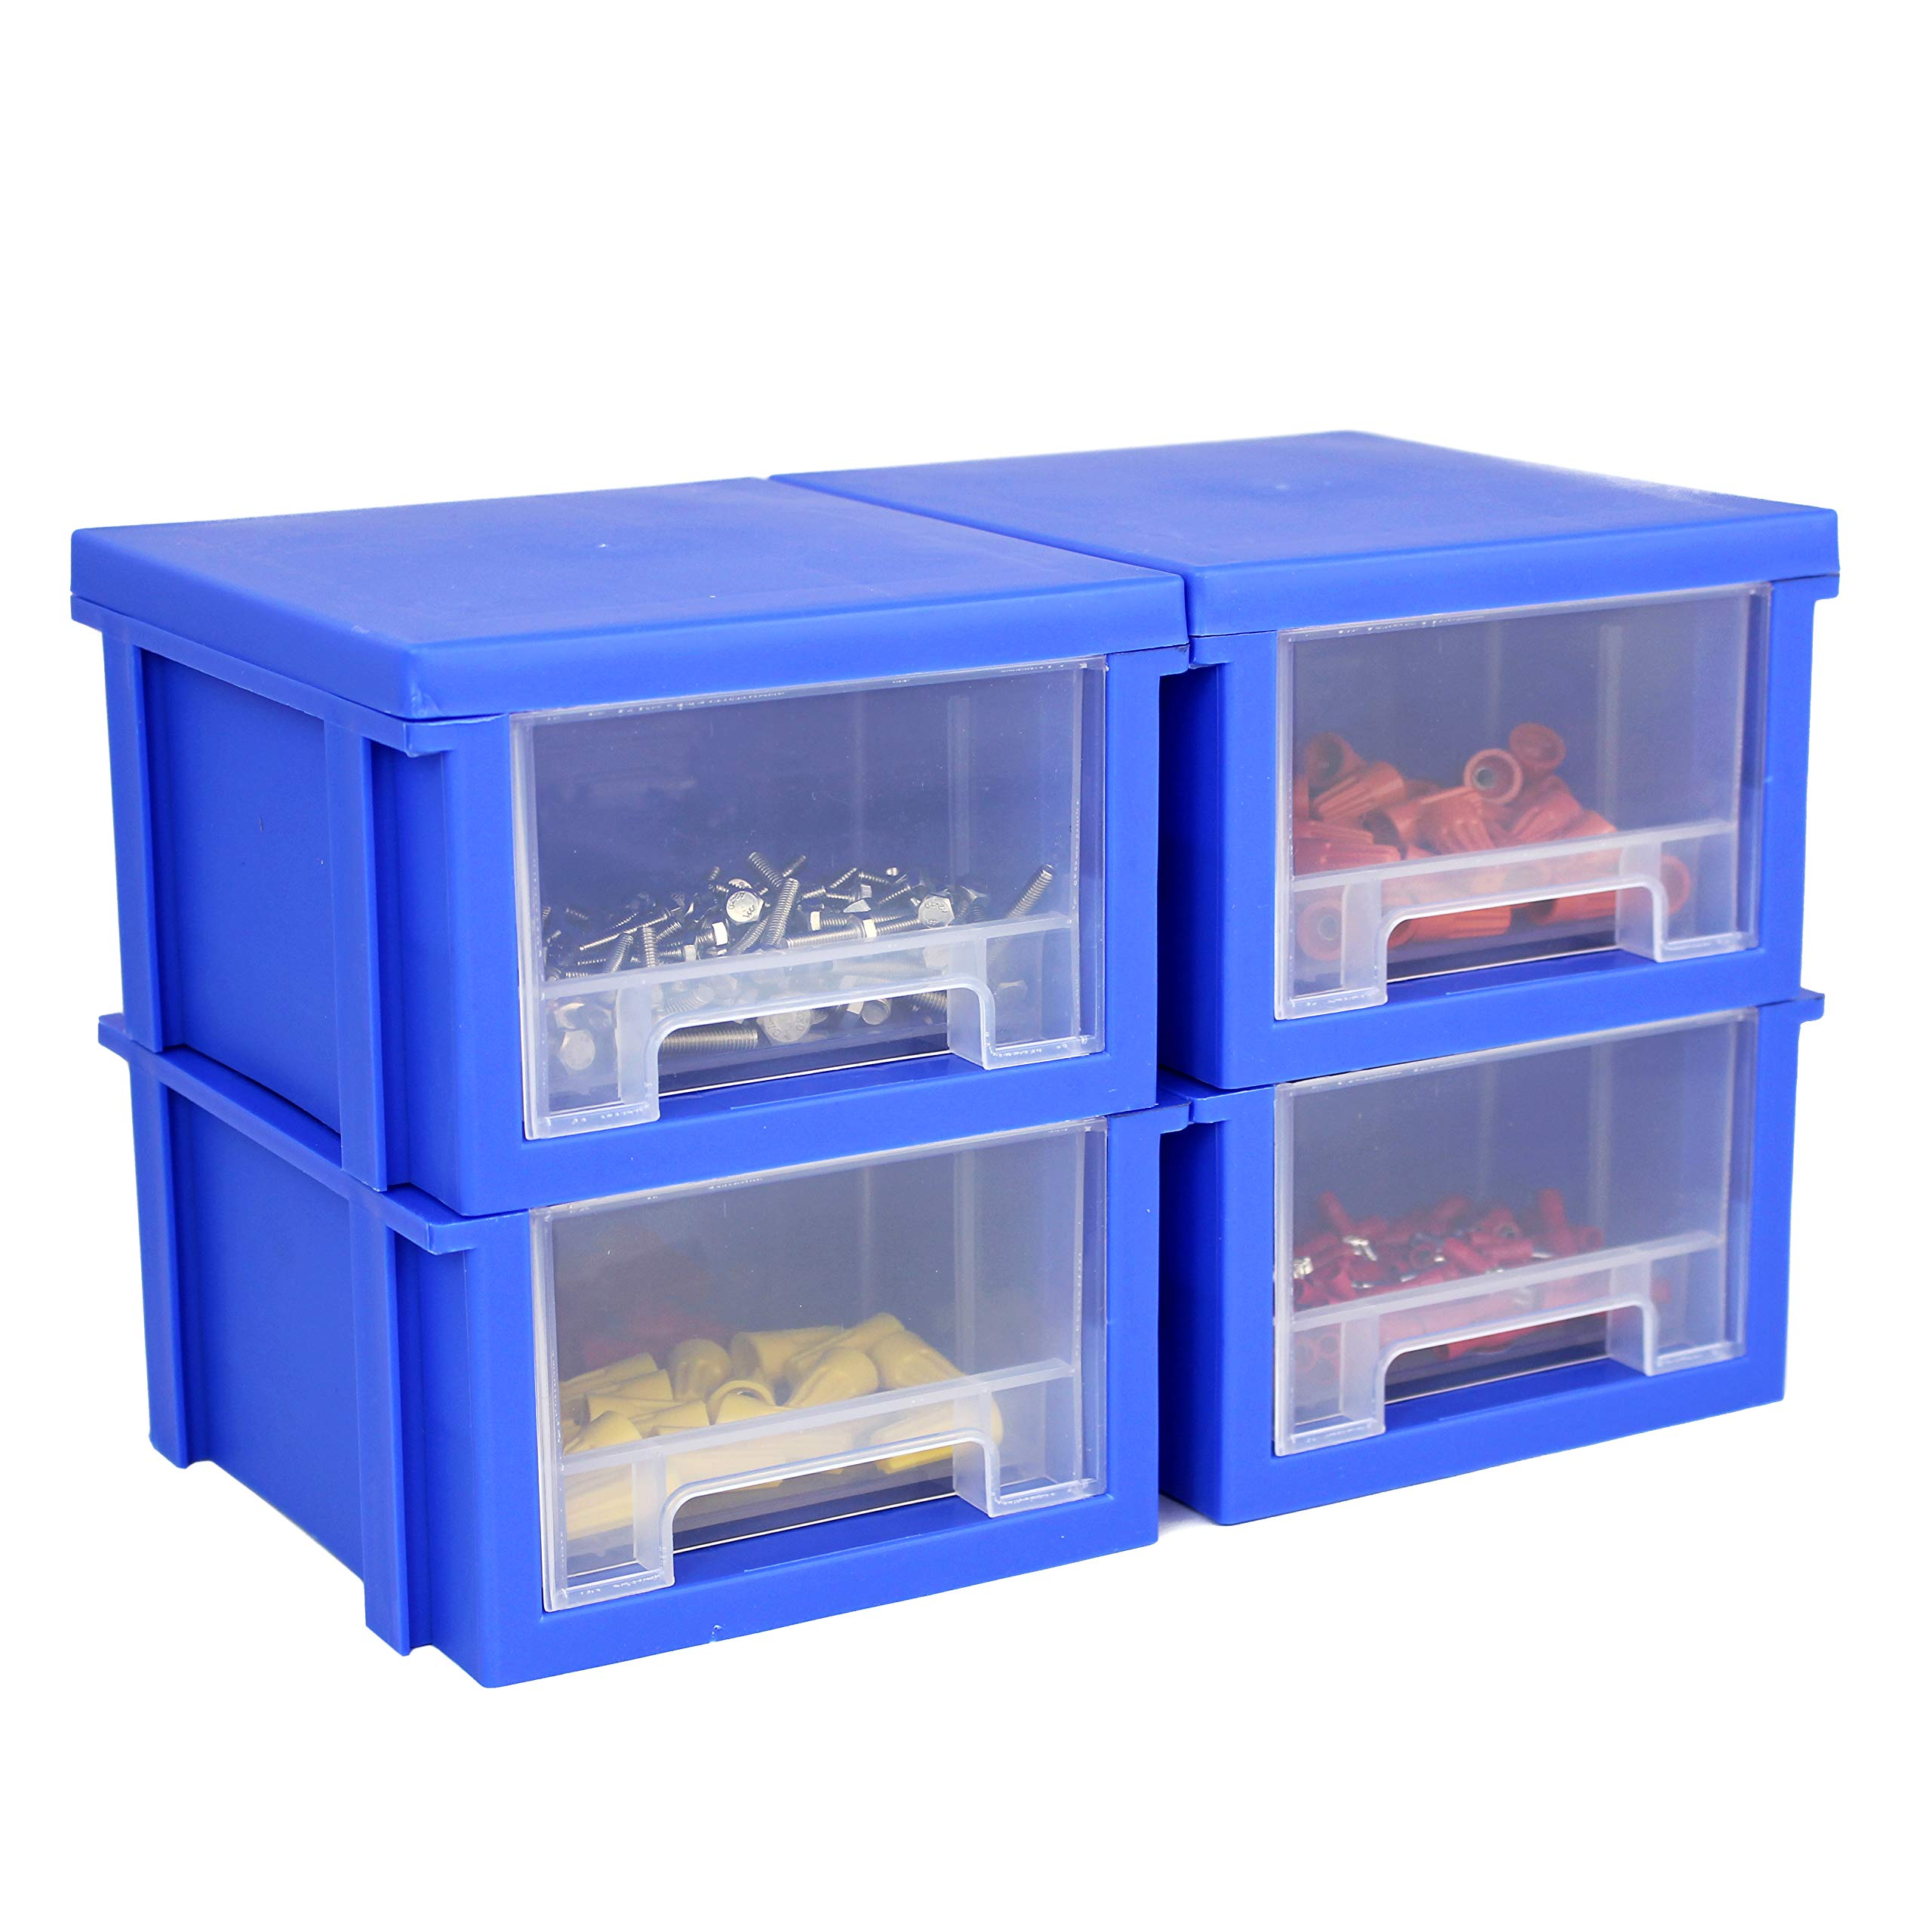 Bins and things Modular Stackable and Expandable Organizer bins